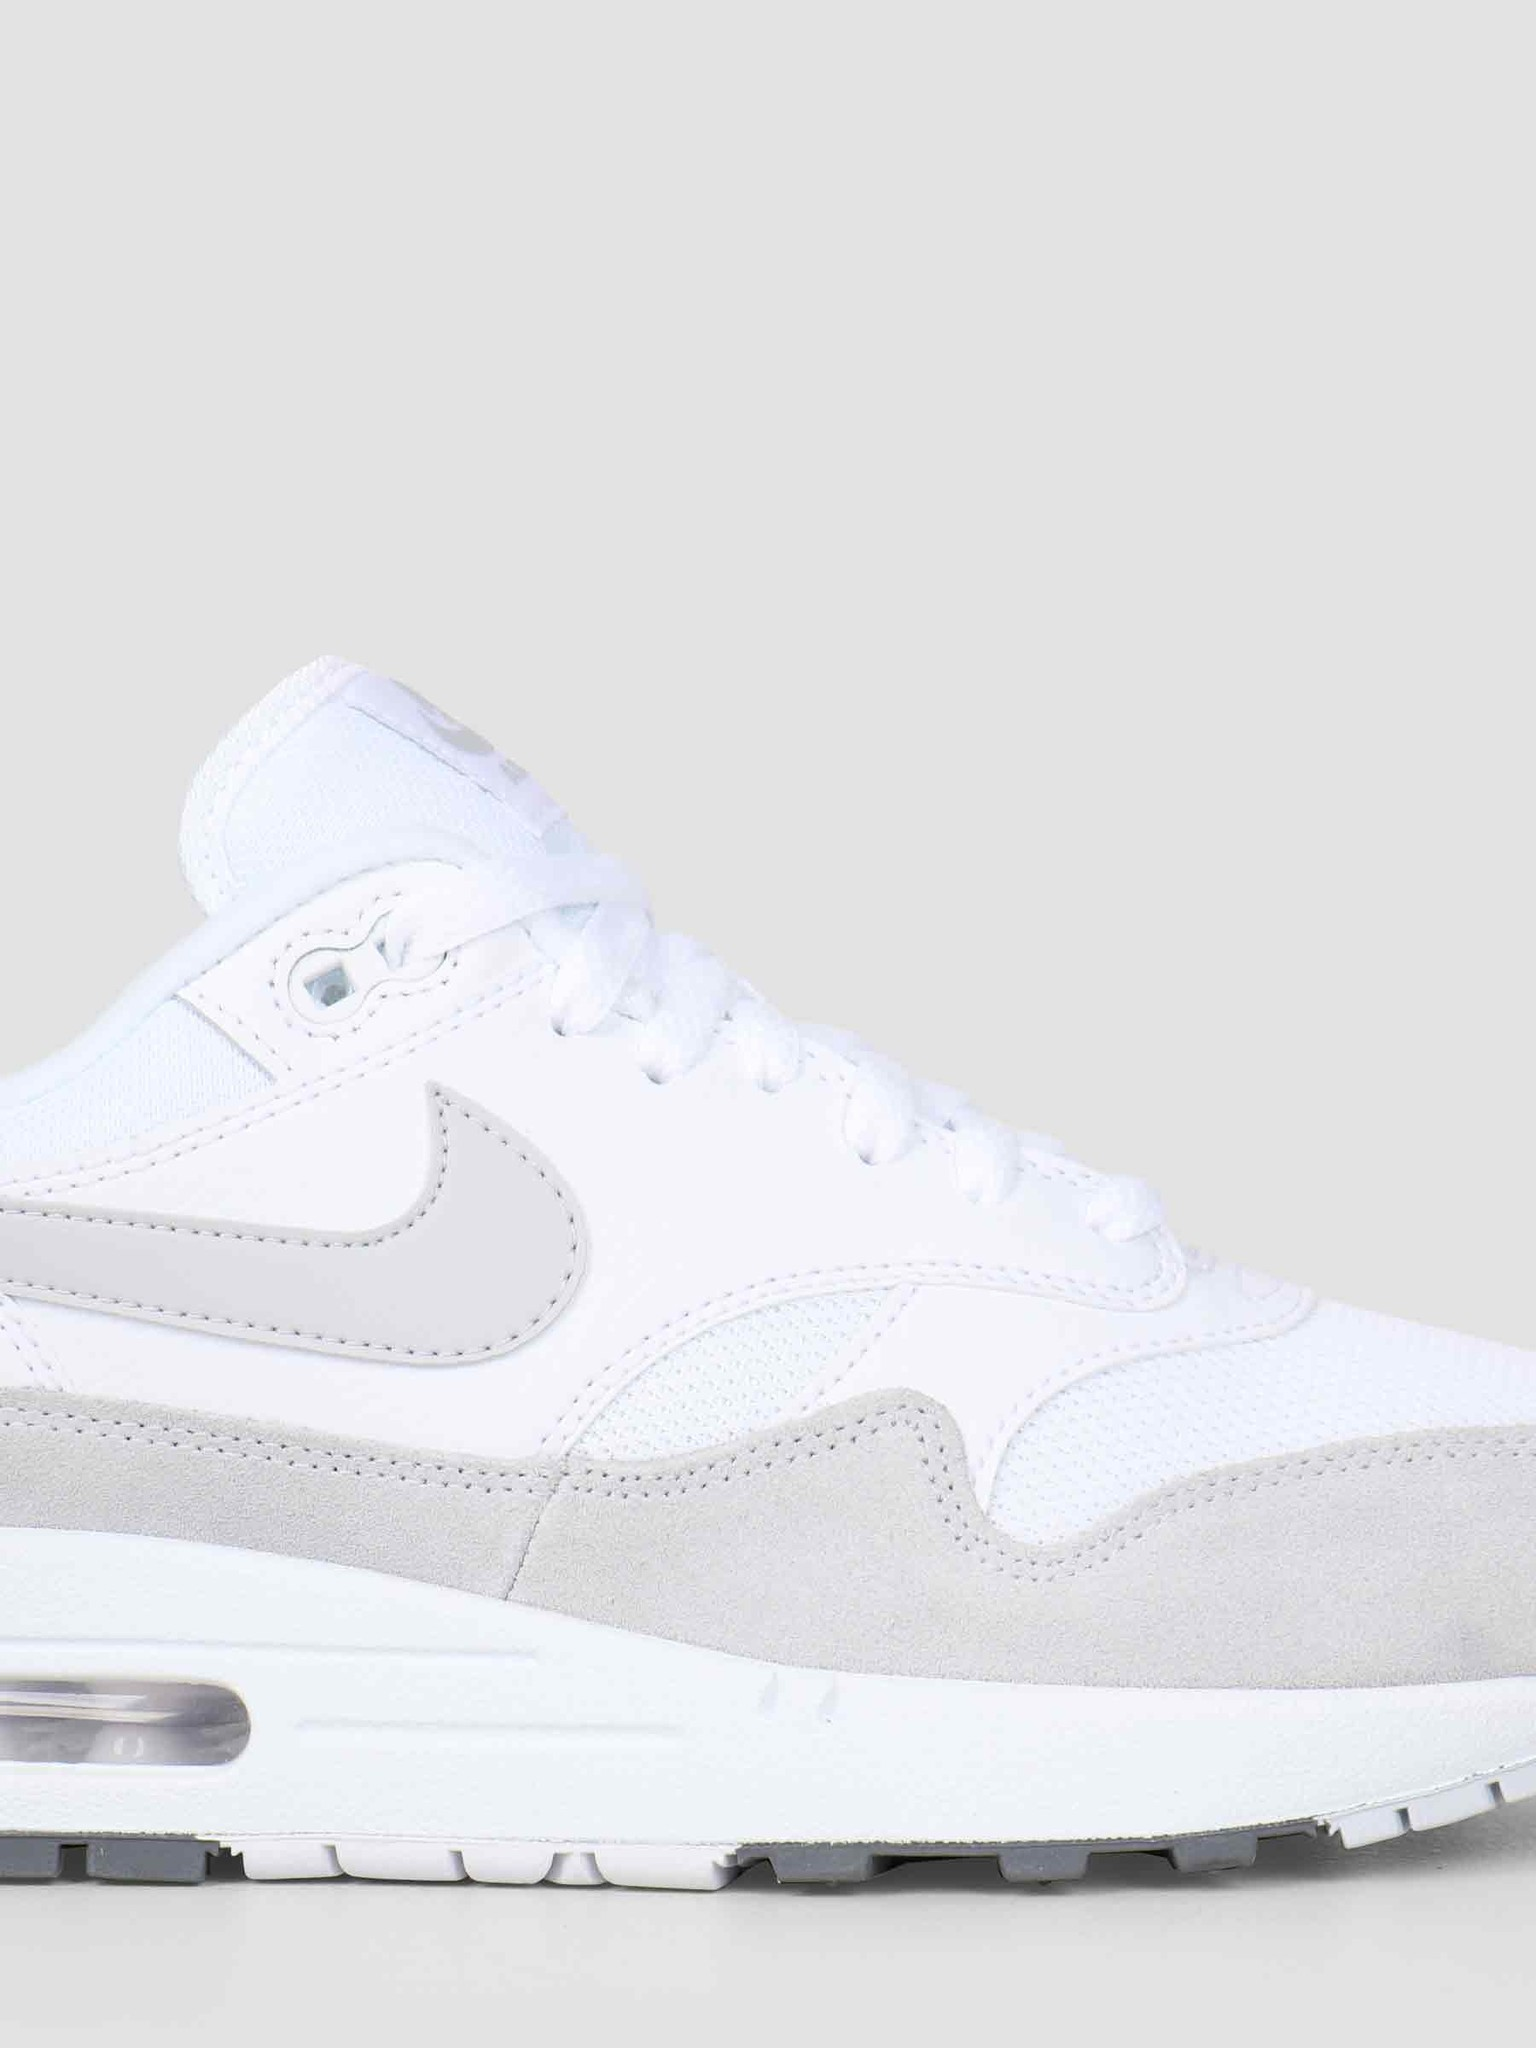 online retailer dcc9c dd6a9 Nike Nike Air Max 1 Shoe White Pure Platinum Cool Grey AH8145-110